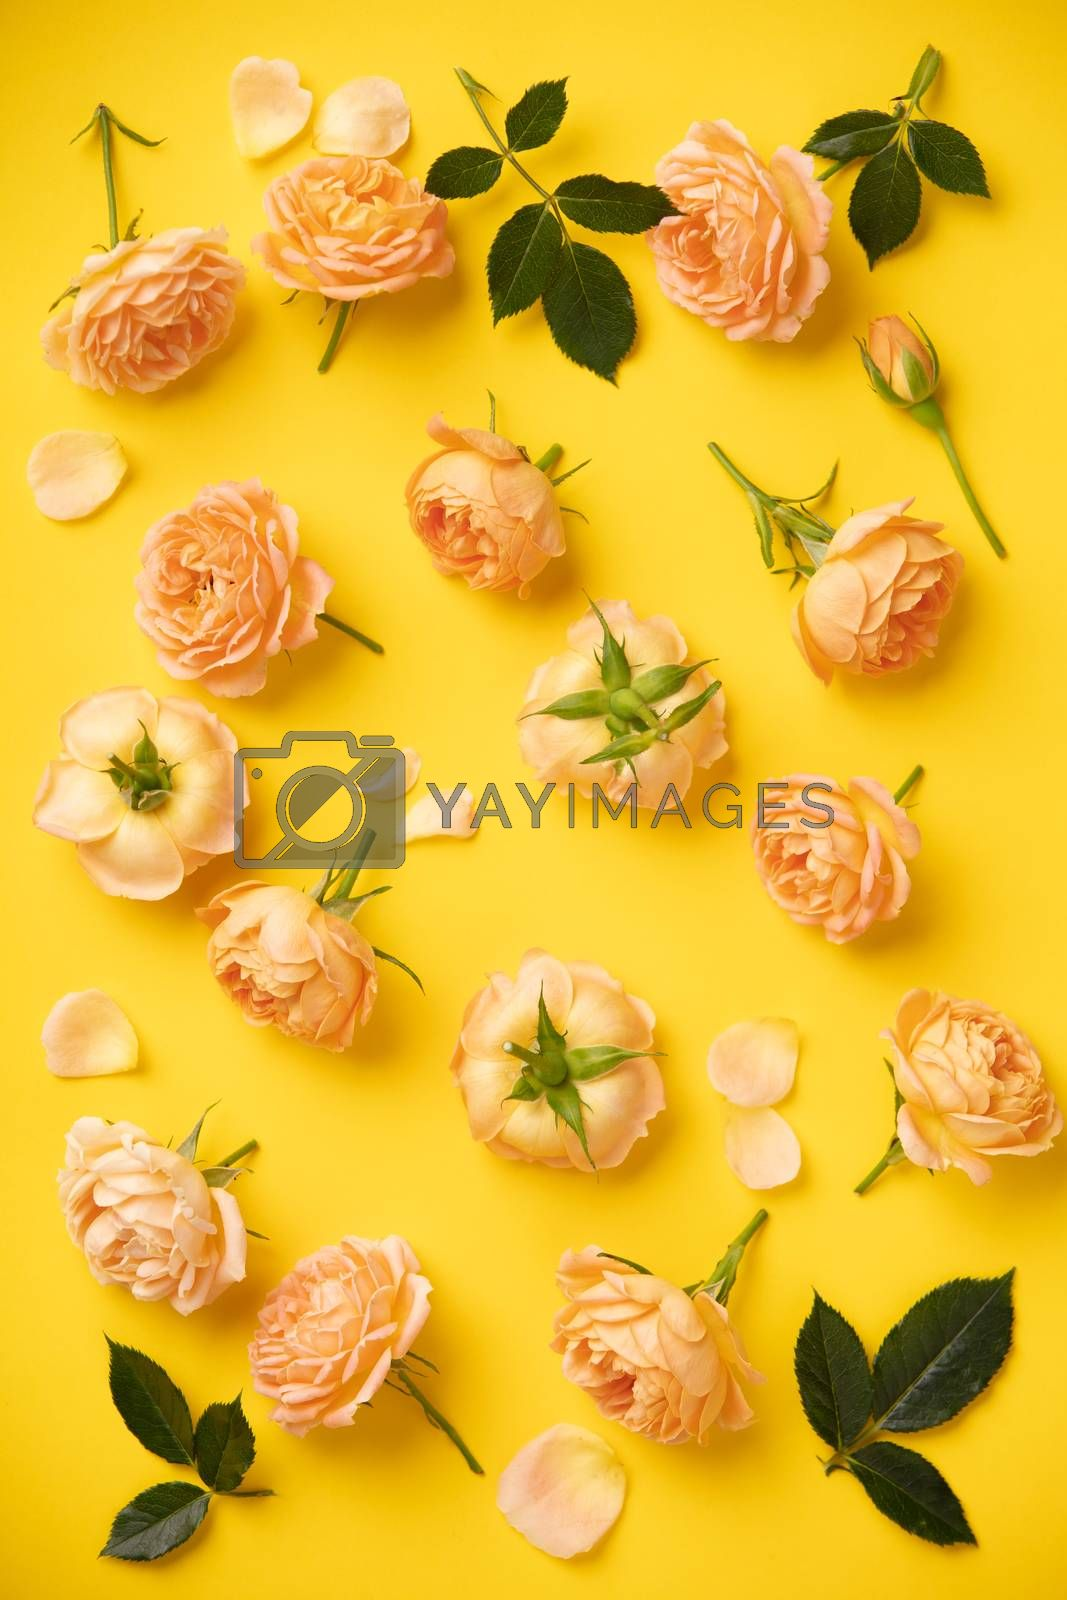 Floral pattern with pink roses and leaves on yellow background, flat lay